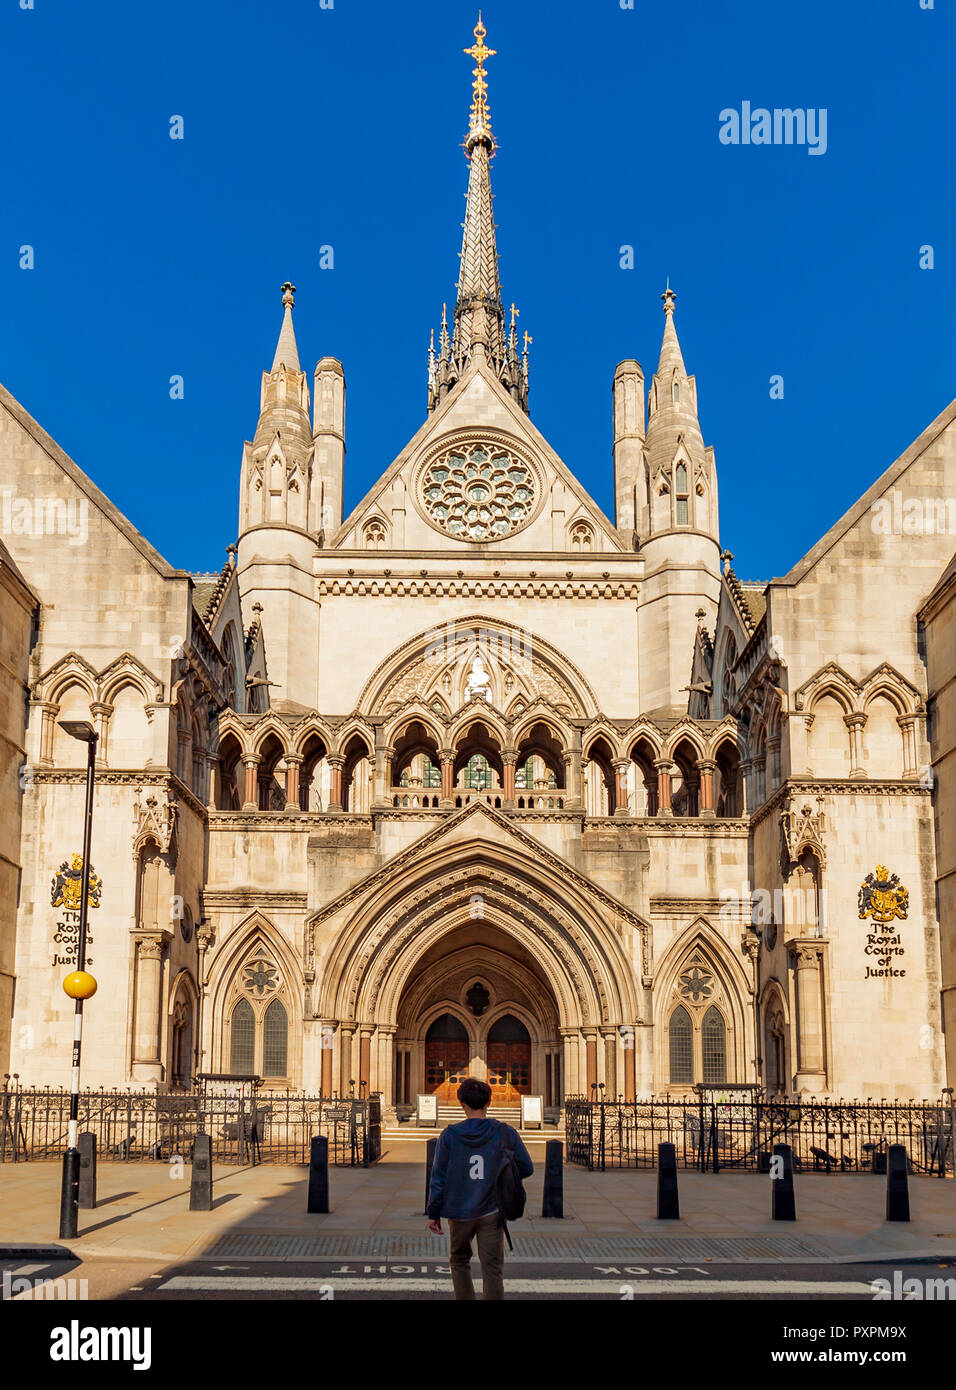 The Royal Courts of Justice London. - Stock Image